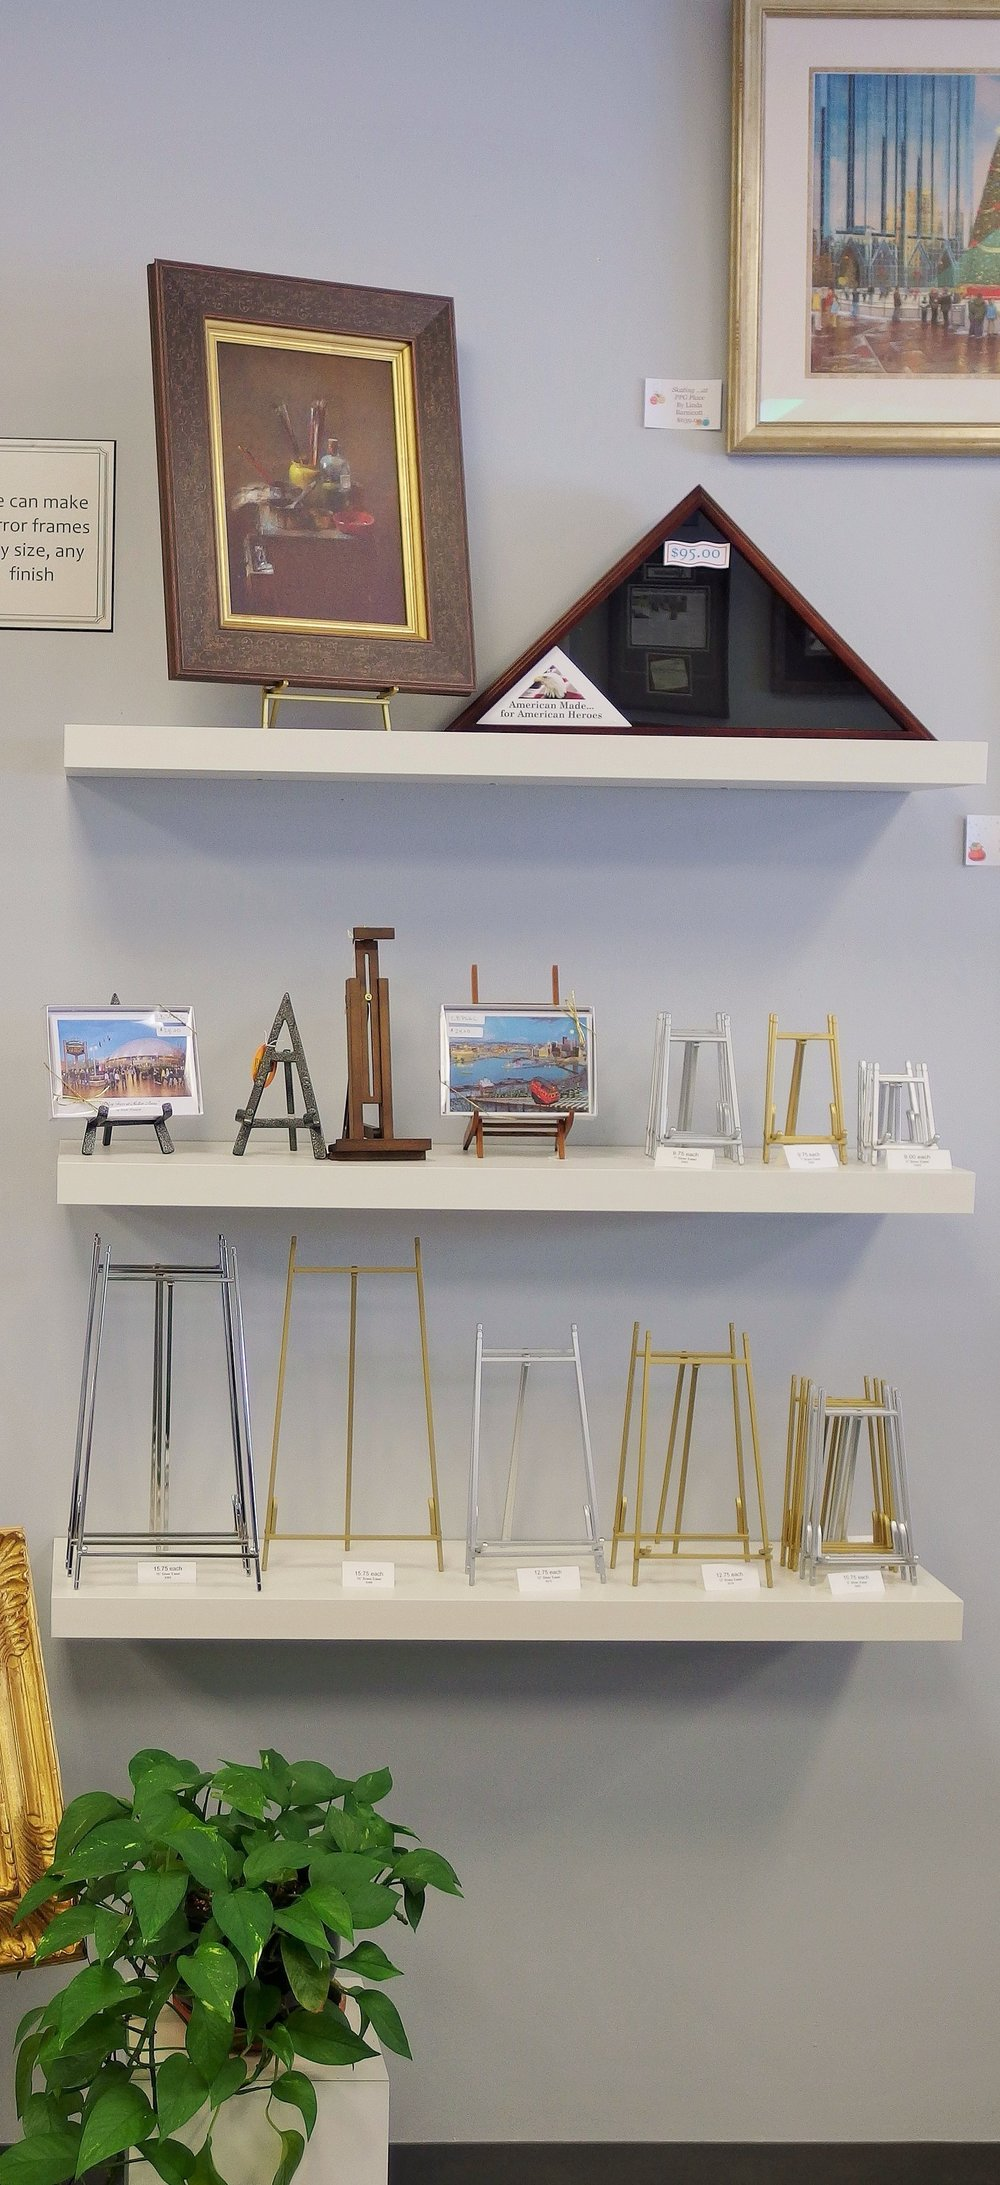 Lois Guinn Framing products